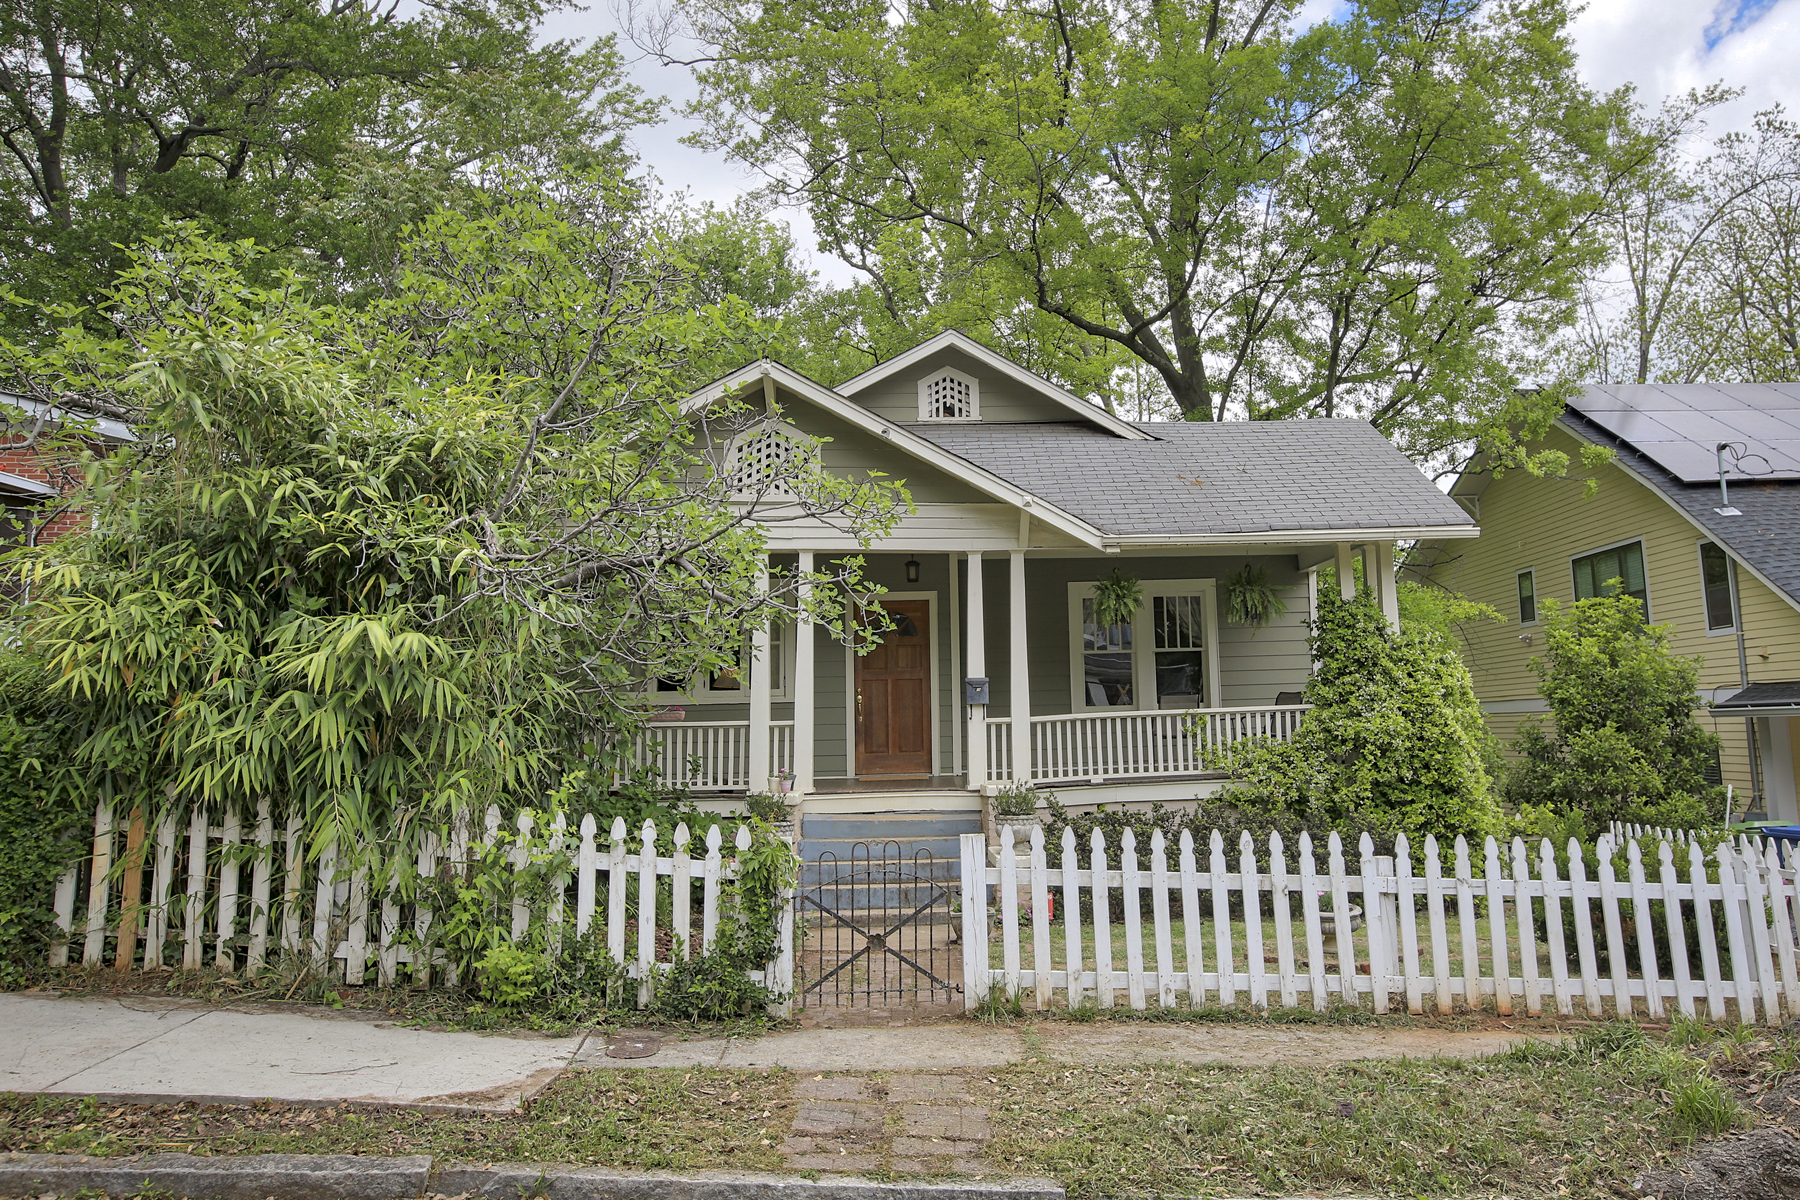 Single Family Home for Sale at Charming and Spacious Historic Grant Park Bungalow 676 Home Ave Atlanta, Georgia 30312 United States